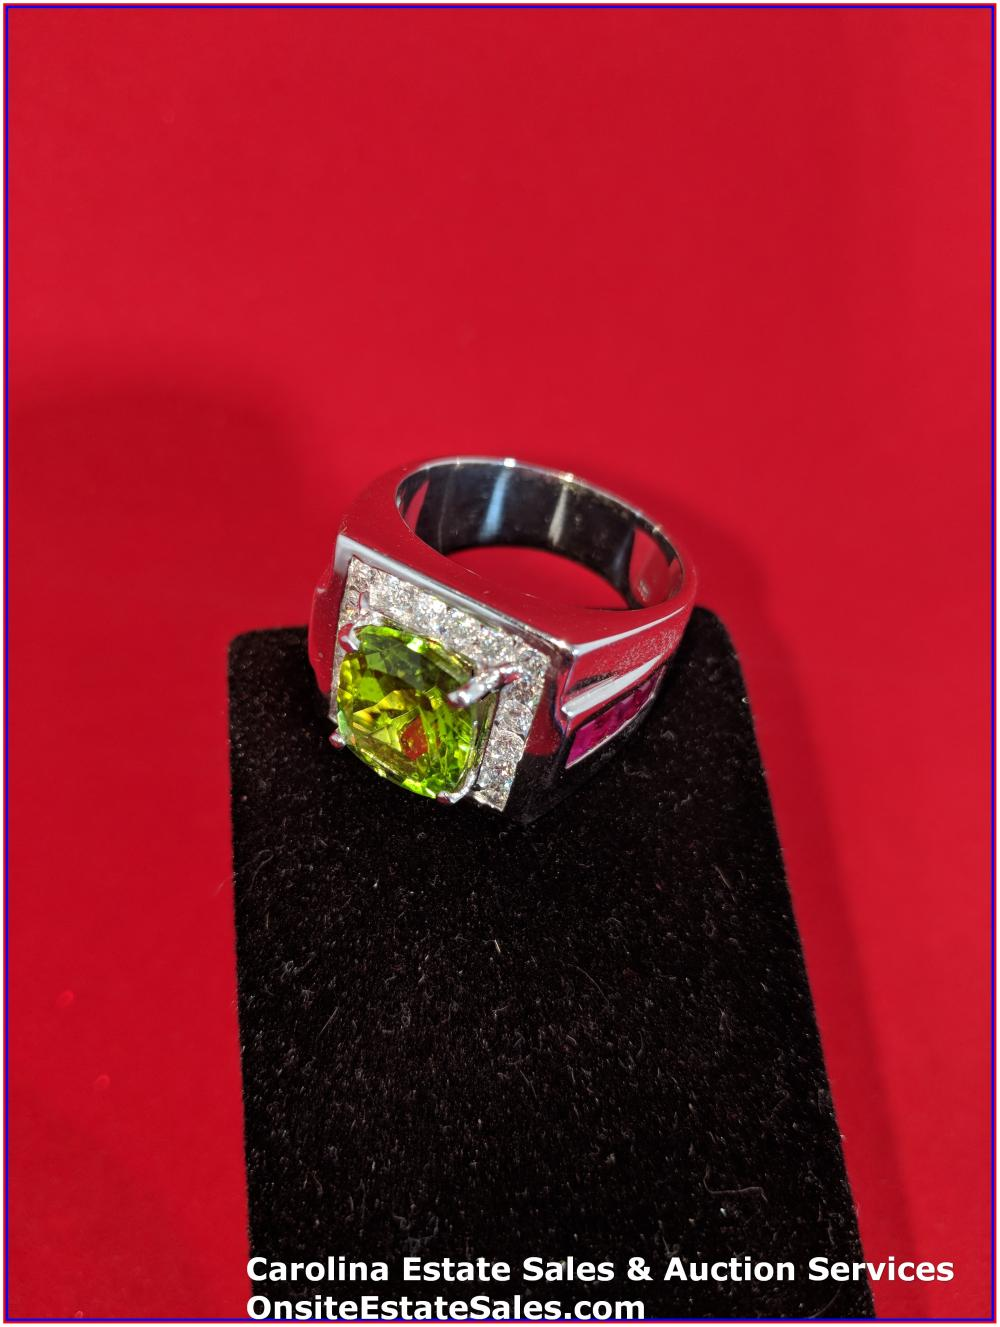 14K Gem Ring Gold 19 Grams Total Weight; 8 ct Peridot Center Stone Surround by Diamonds